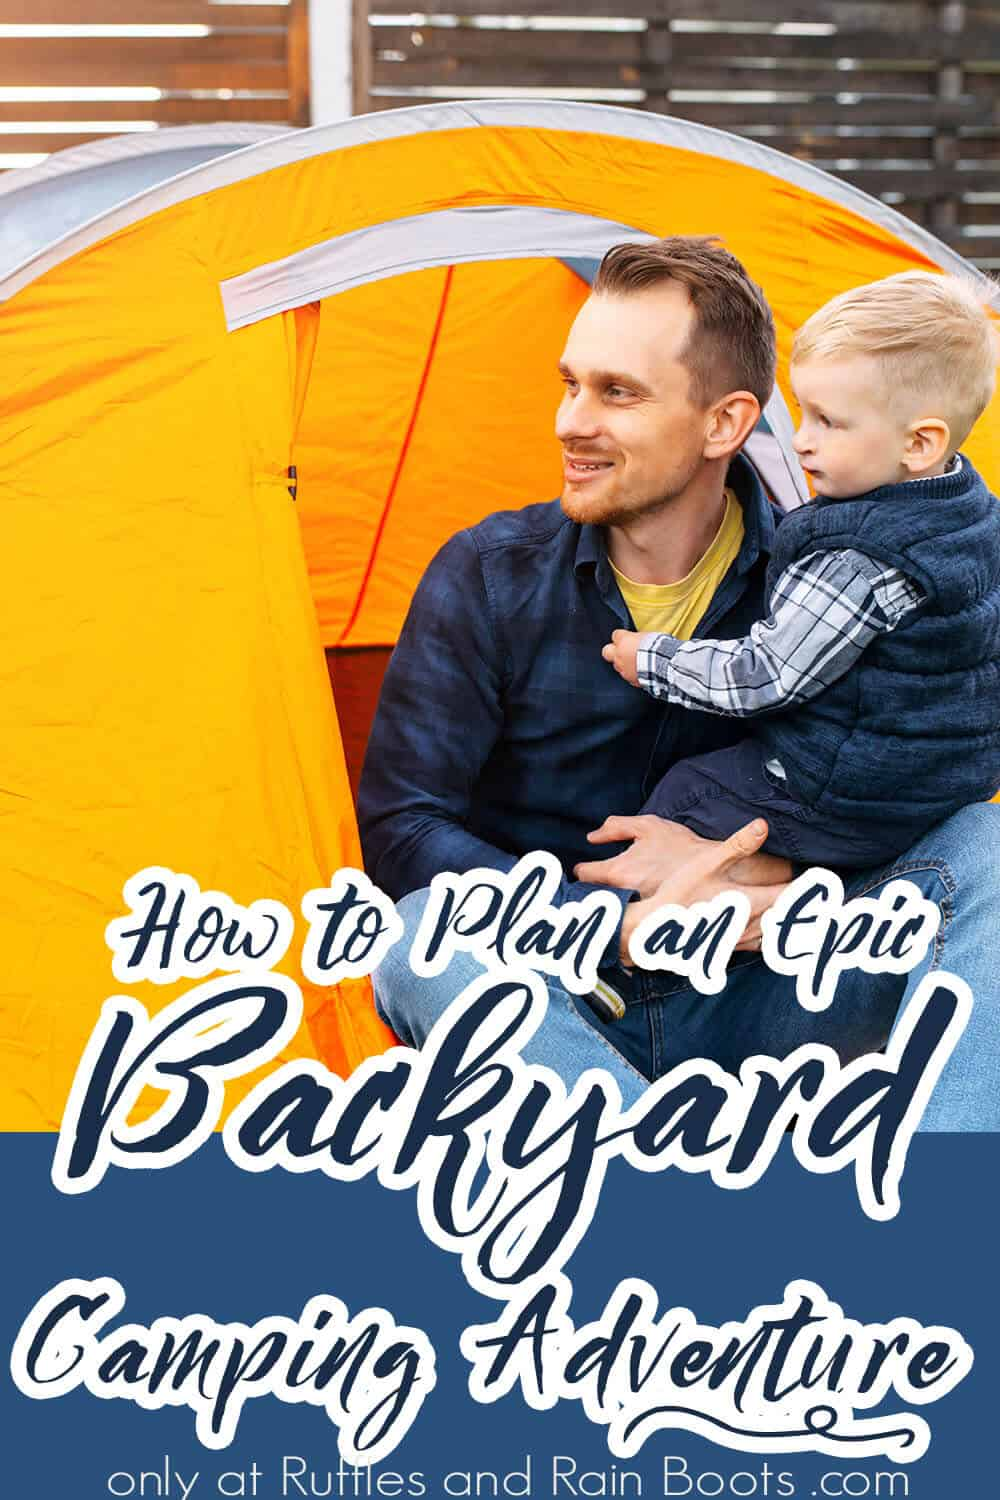 backyard camping tips with text which reads how to plan an epic backyard camping adventure